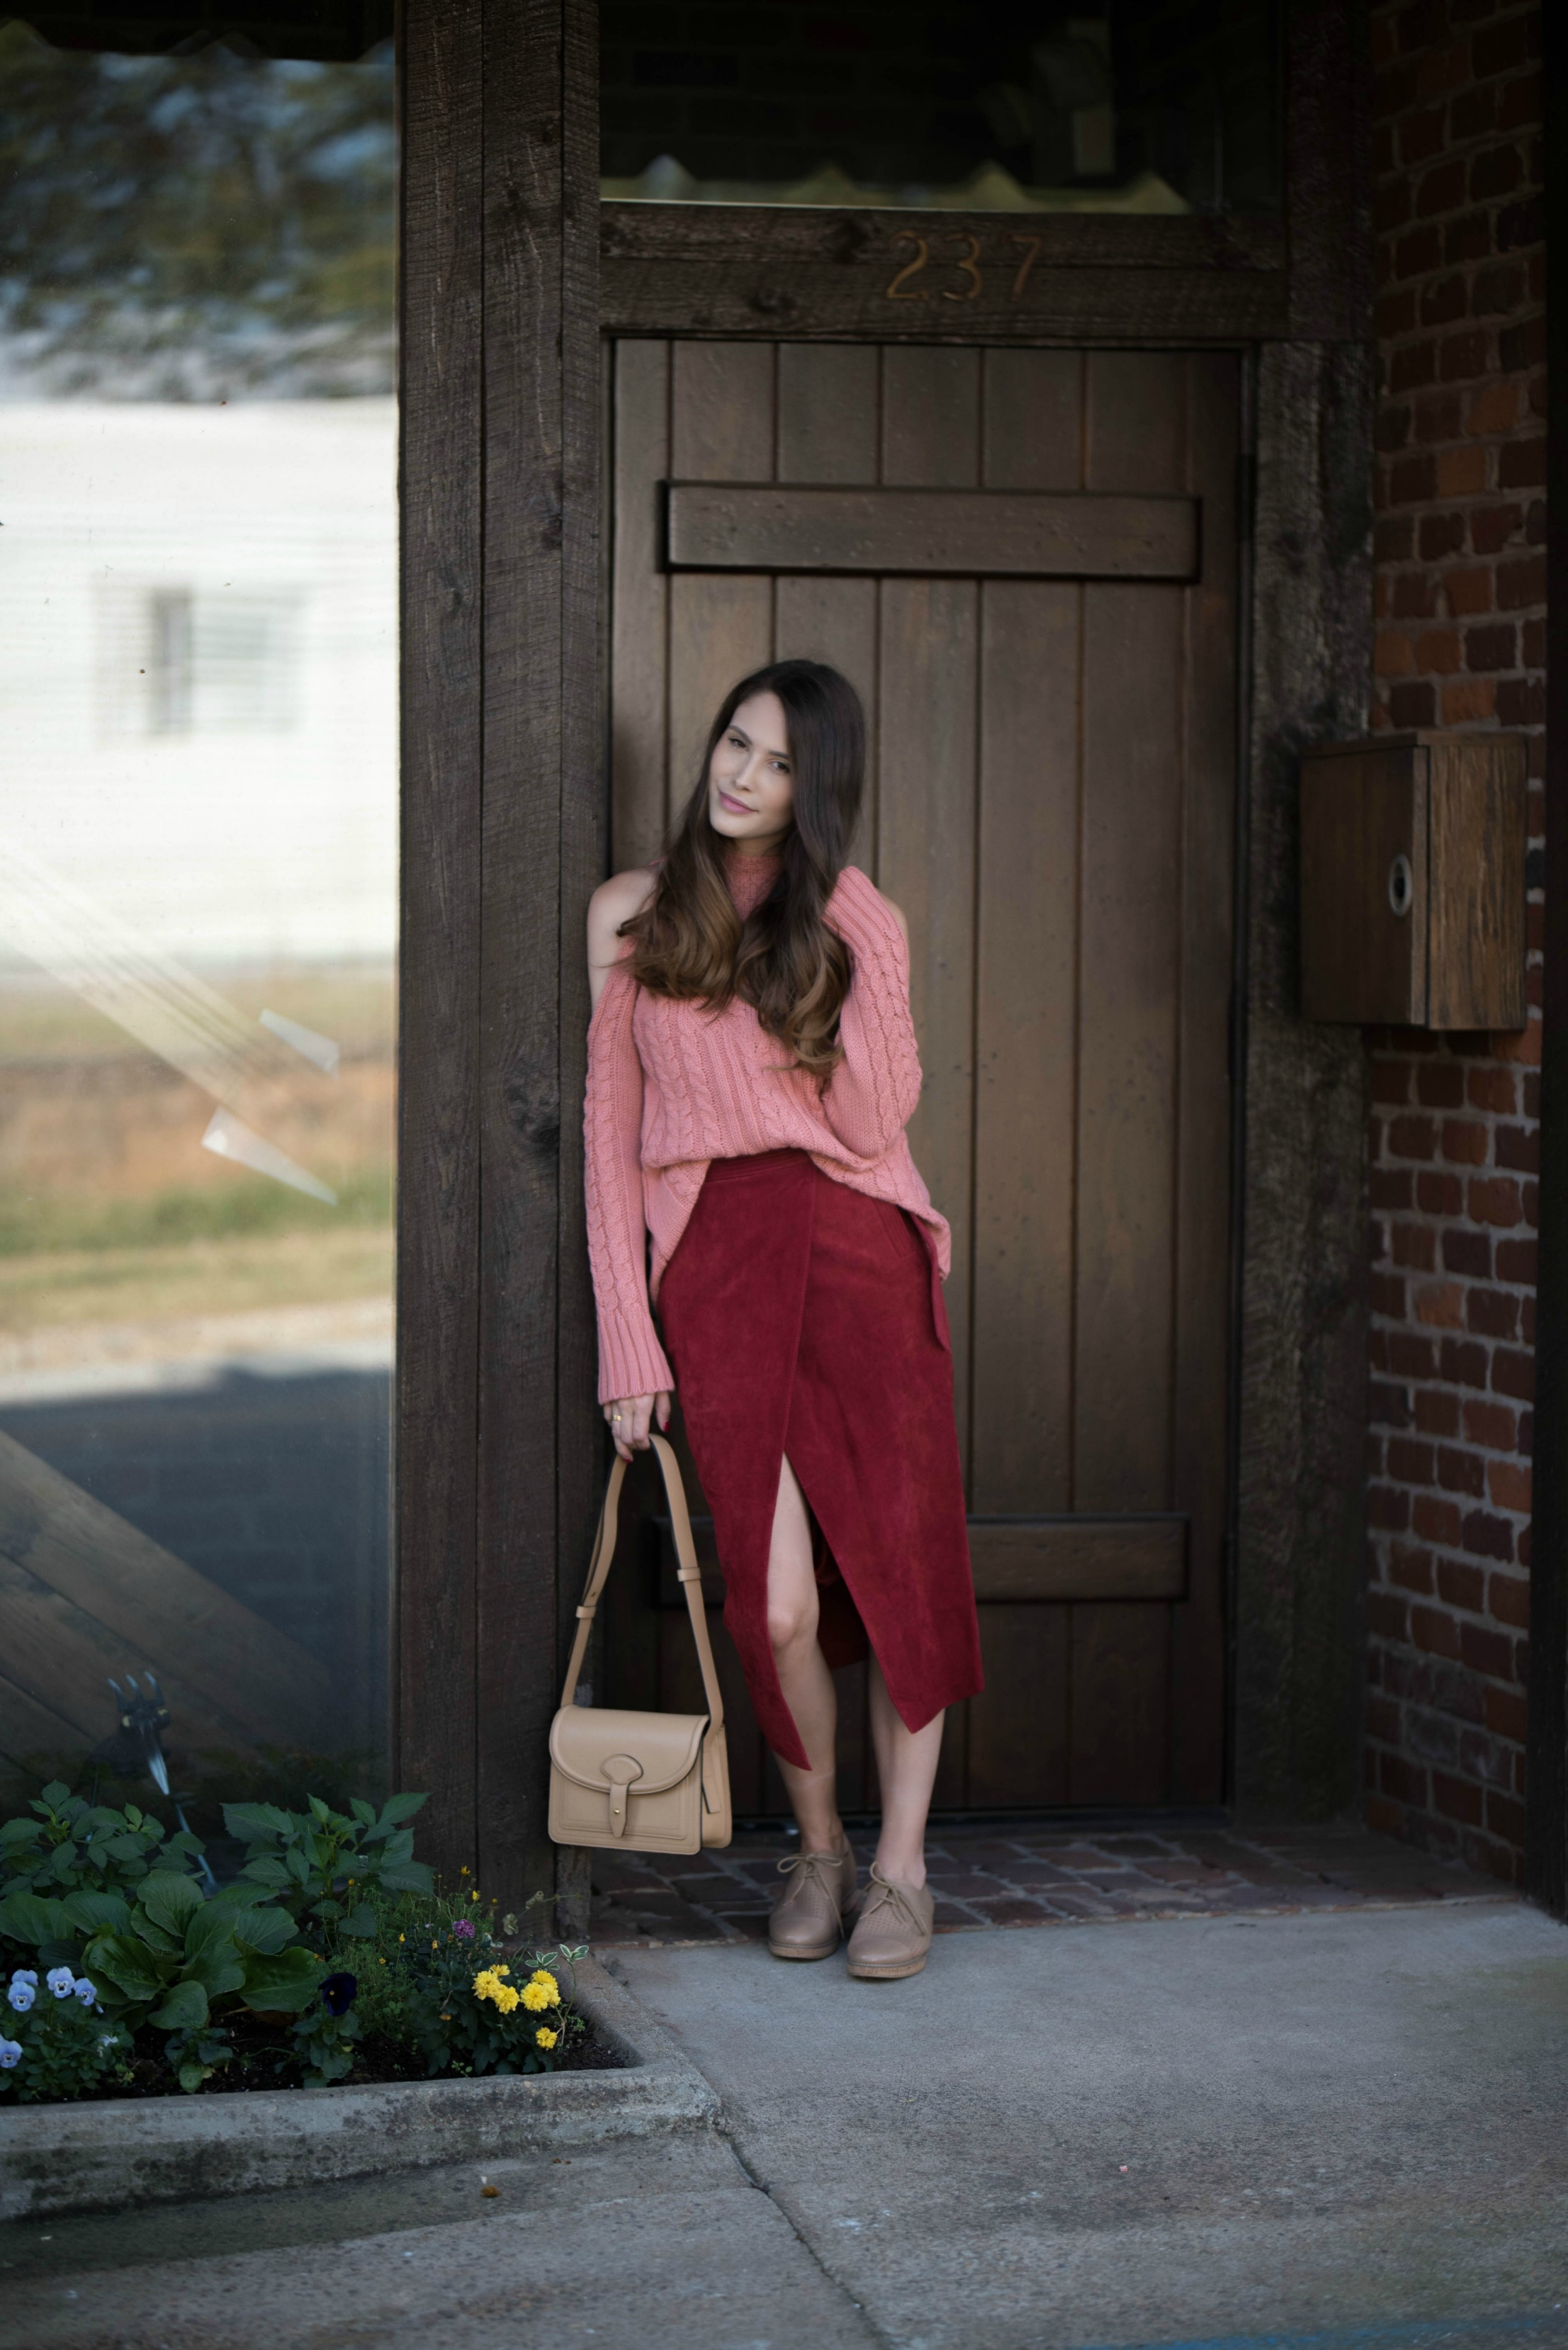 Trendy Fashion Blog | Hues of Pink and Red with Venus.com